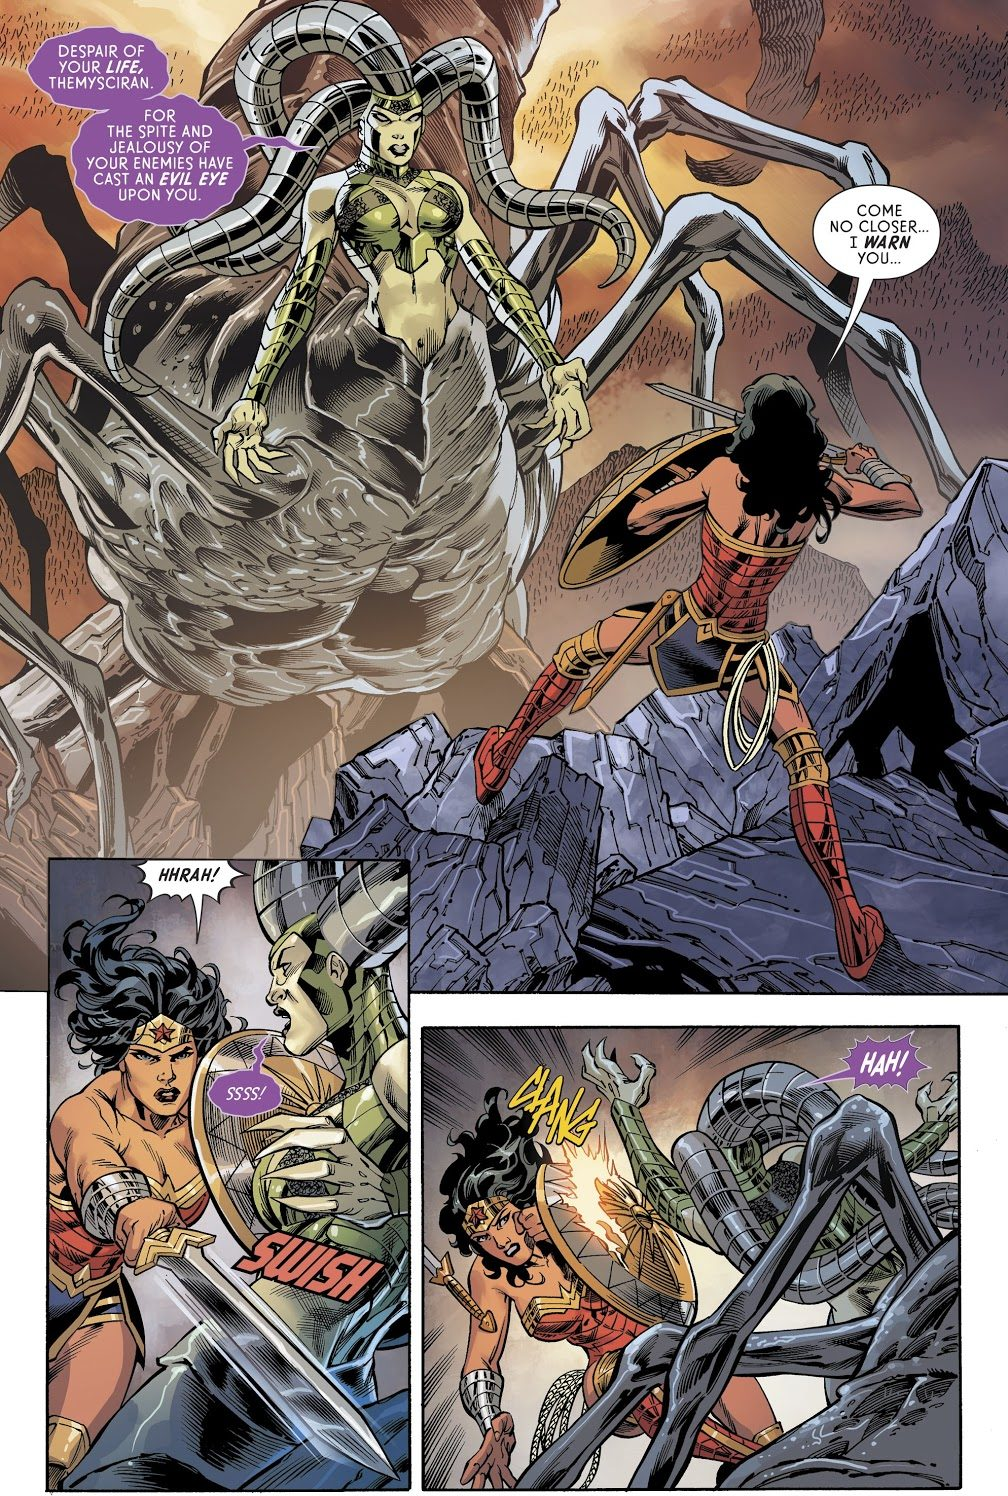 Wonder Woman VS Nemesis (Rebirth)